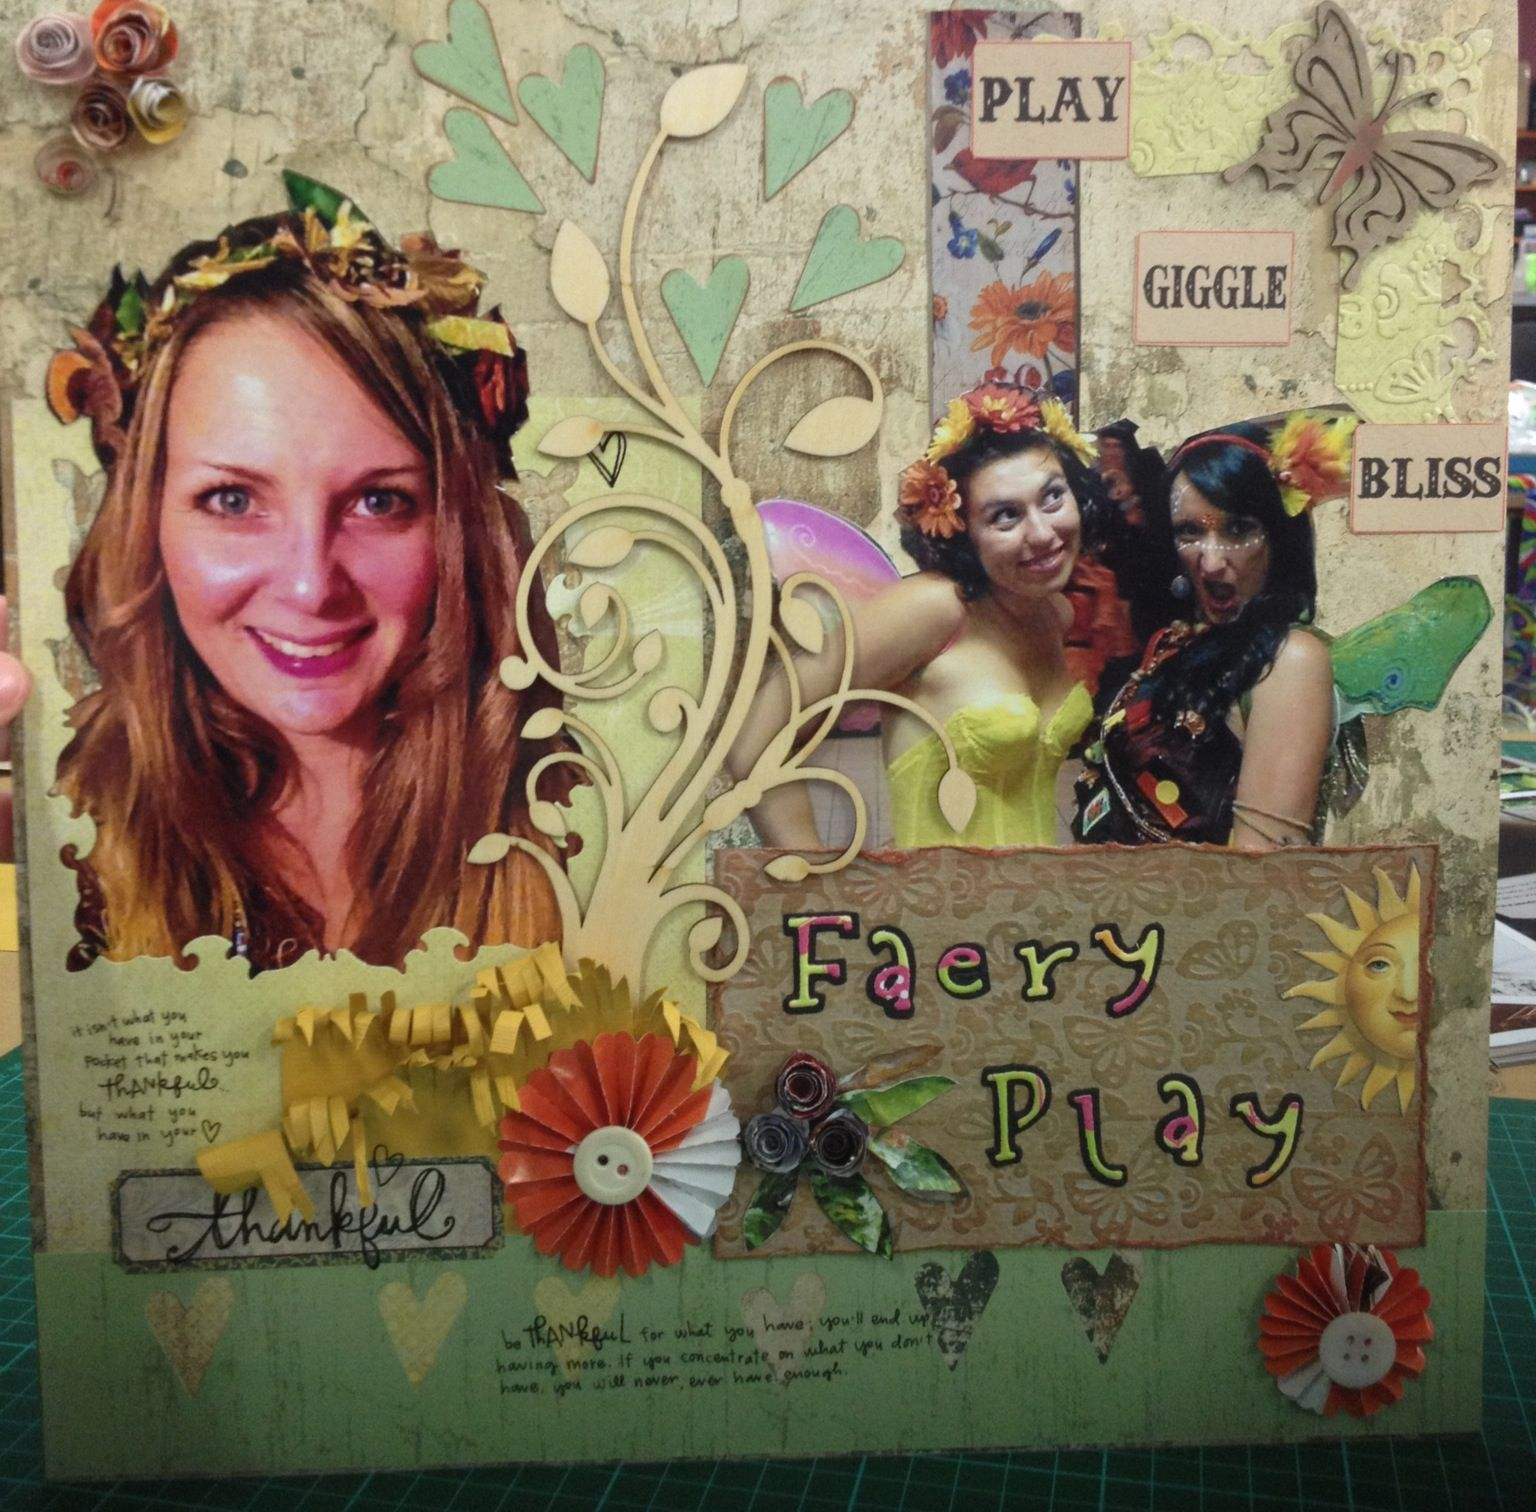 'Faery play' scrapbook layout